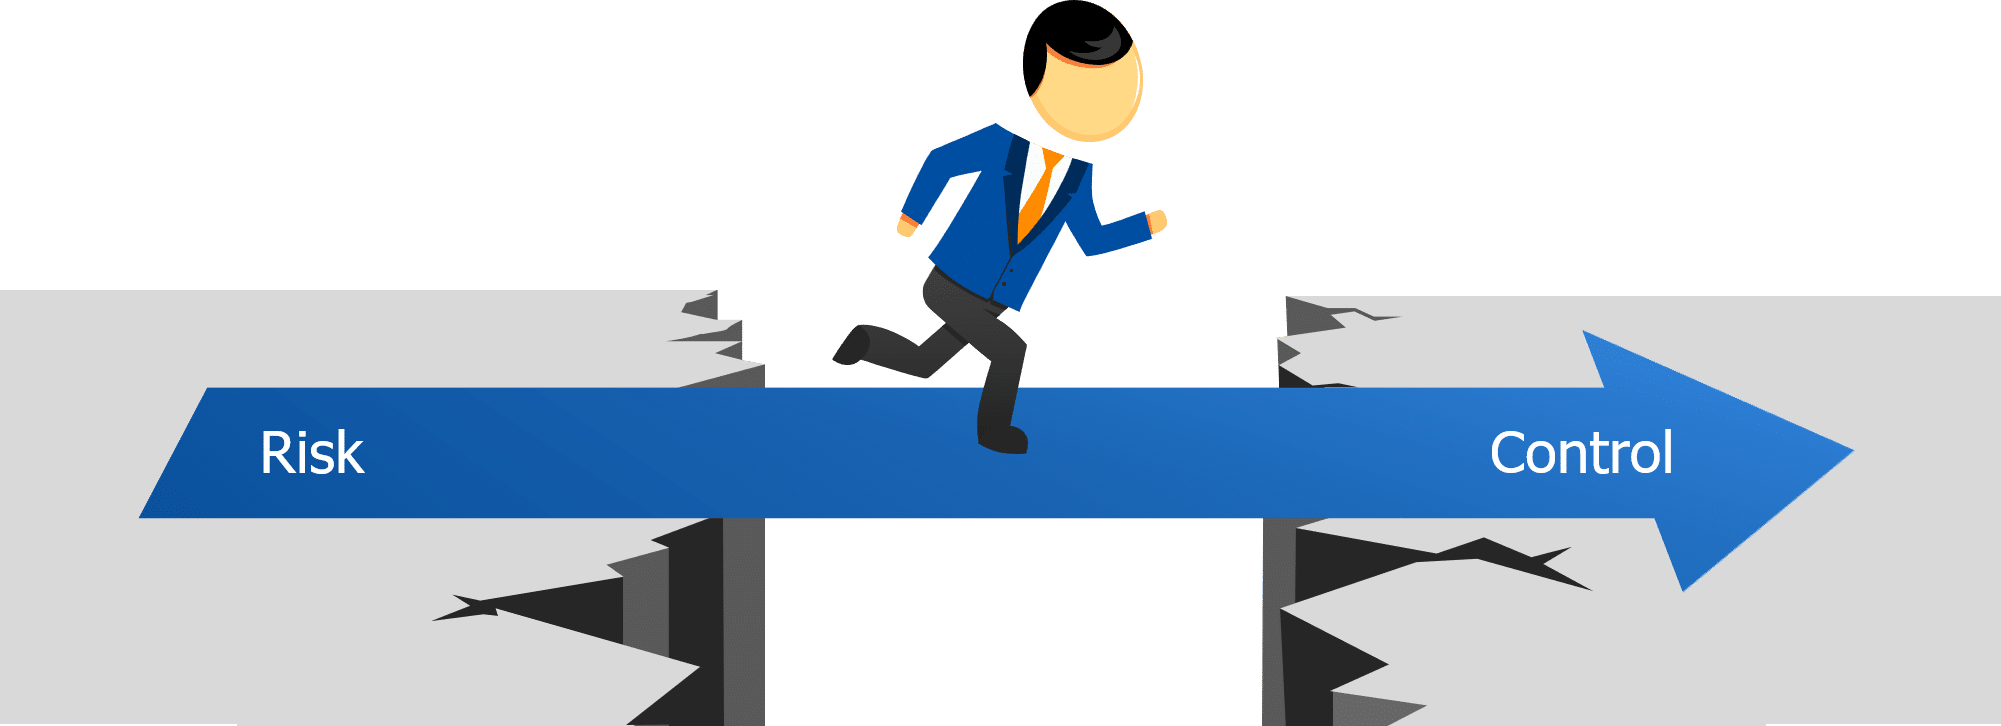 Avanti Europe As Your Expert In Risk Management The clipart is related to self management , management , self assessment. avanti europe as your expert in risk